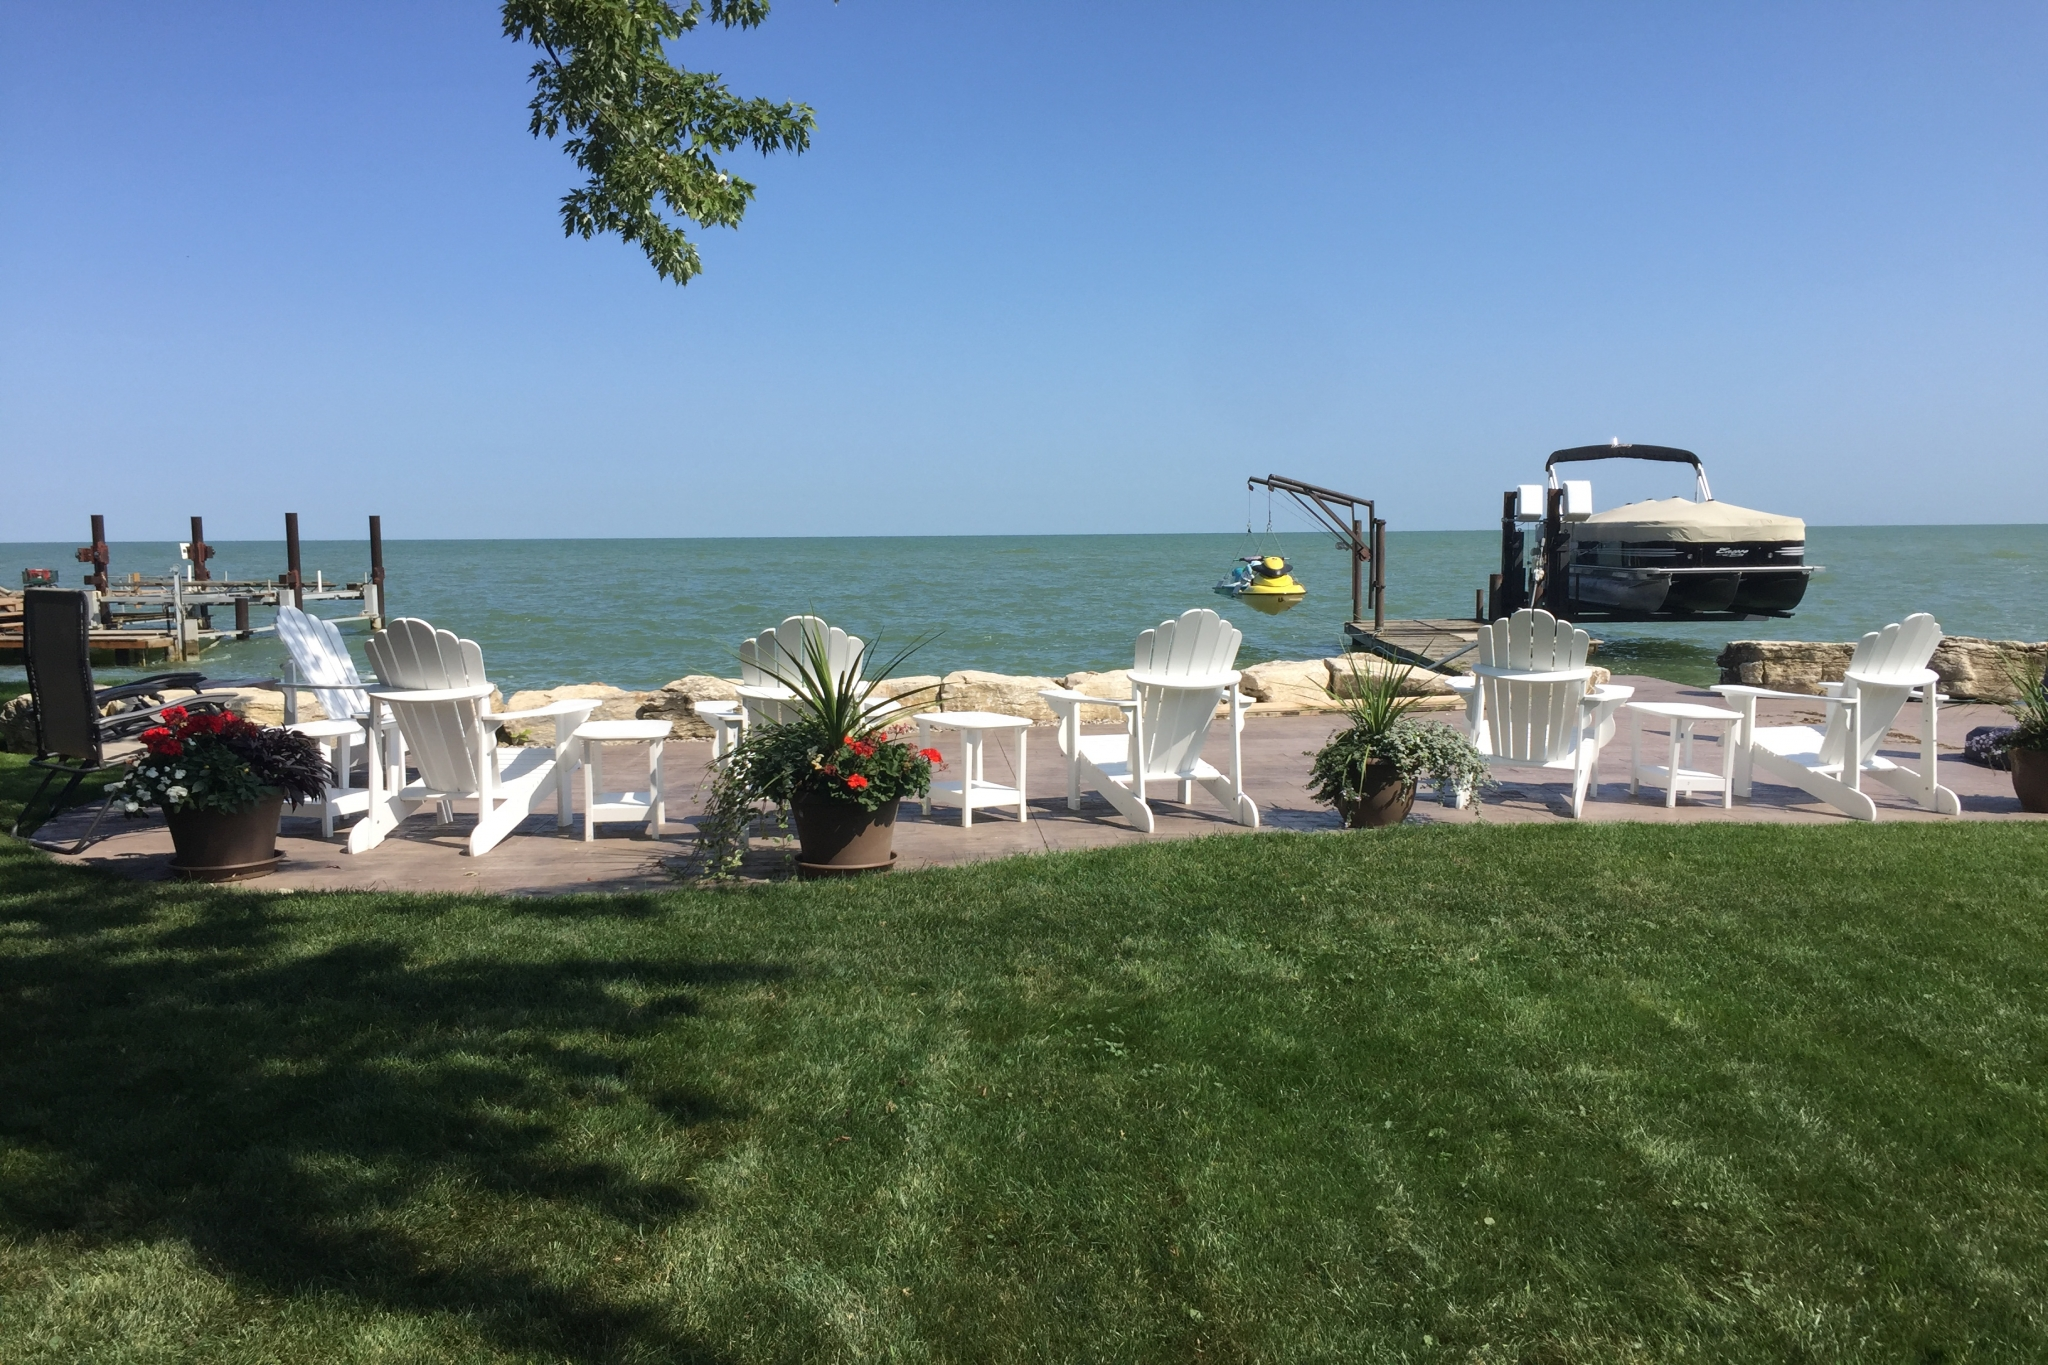 337lakeview Dr - outside